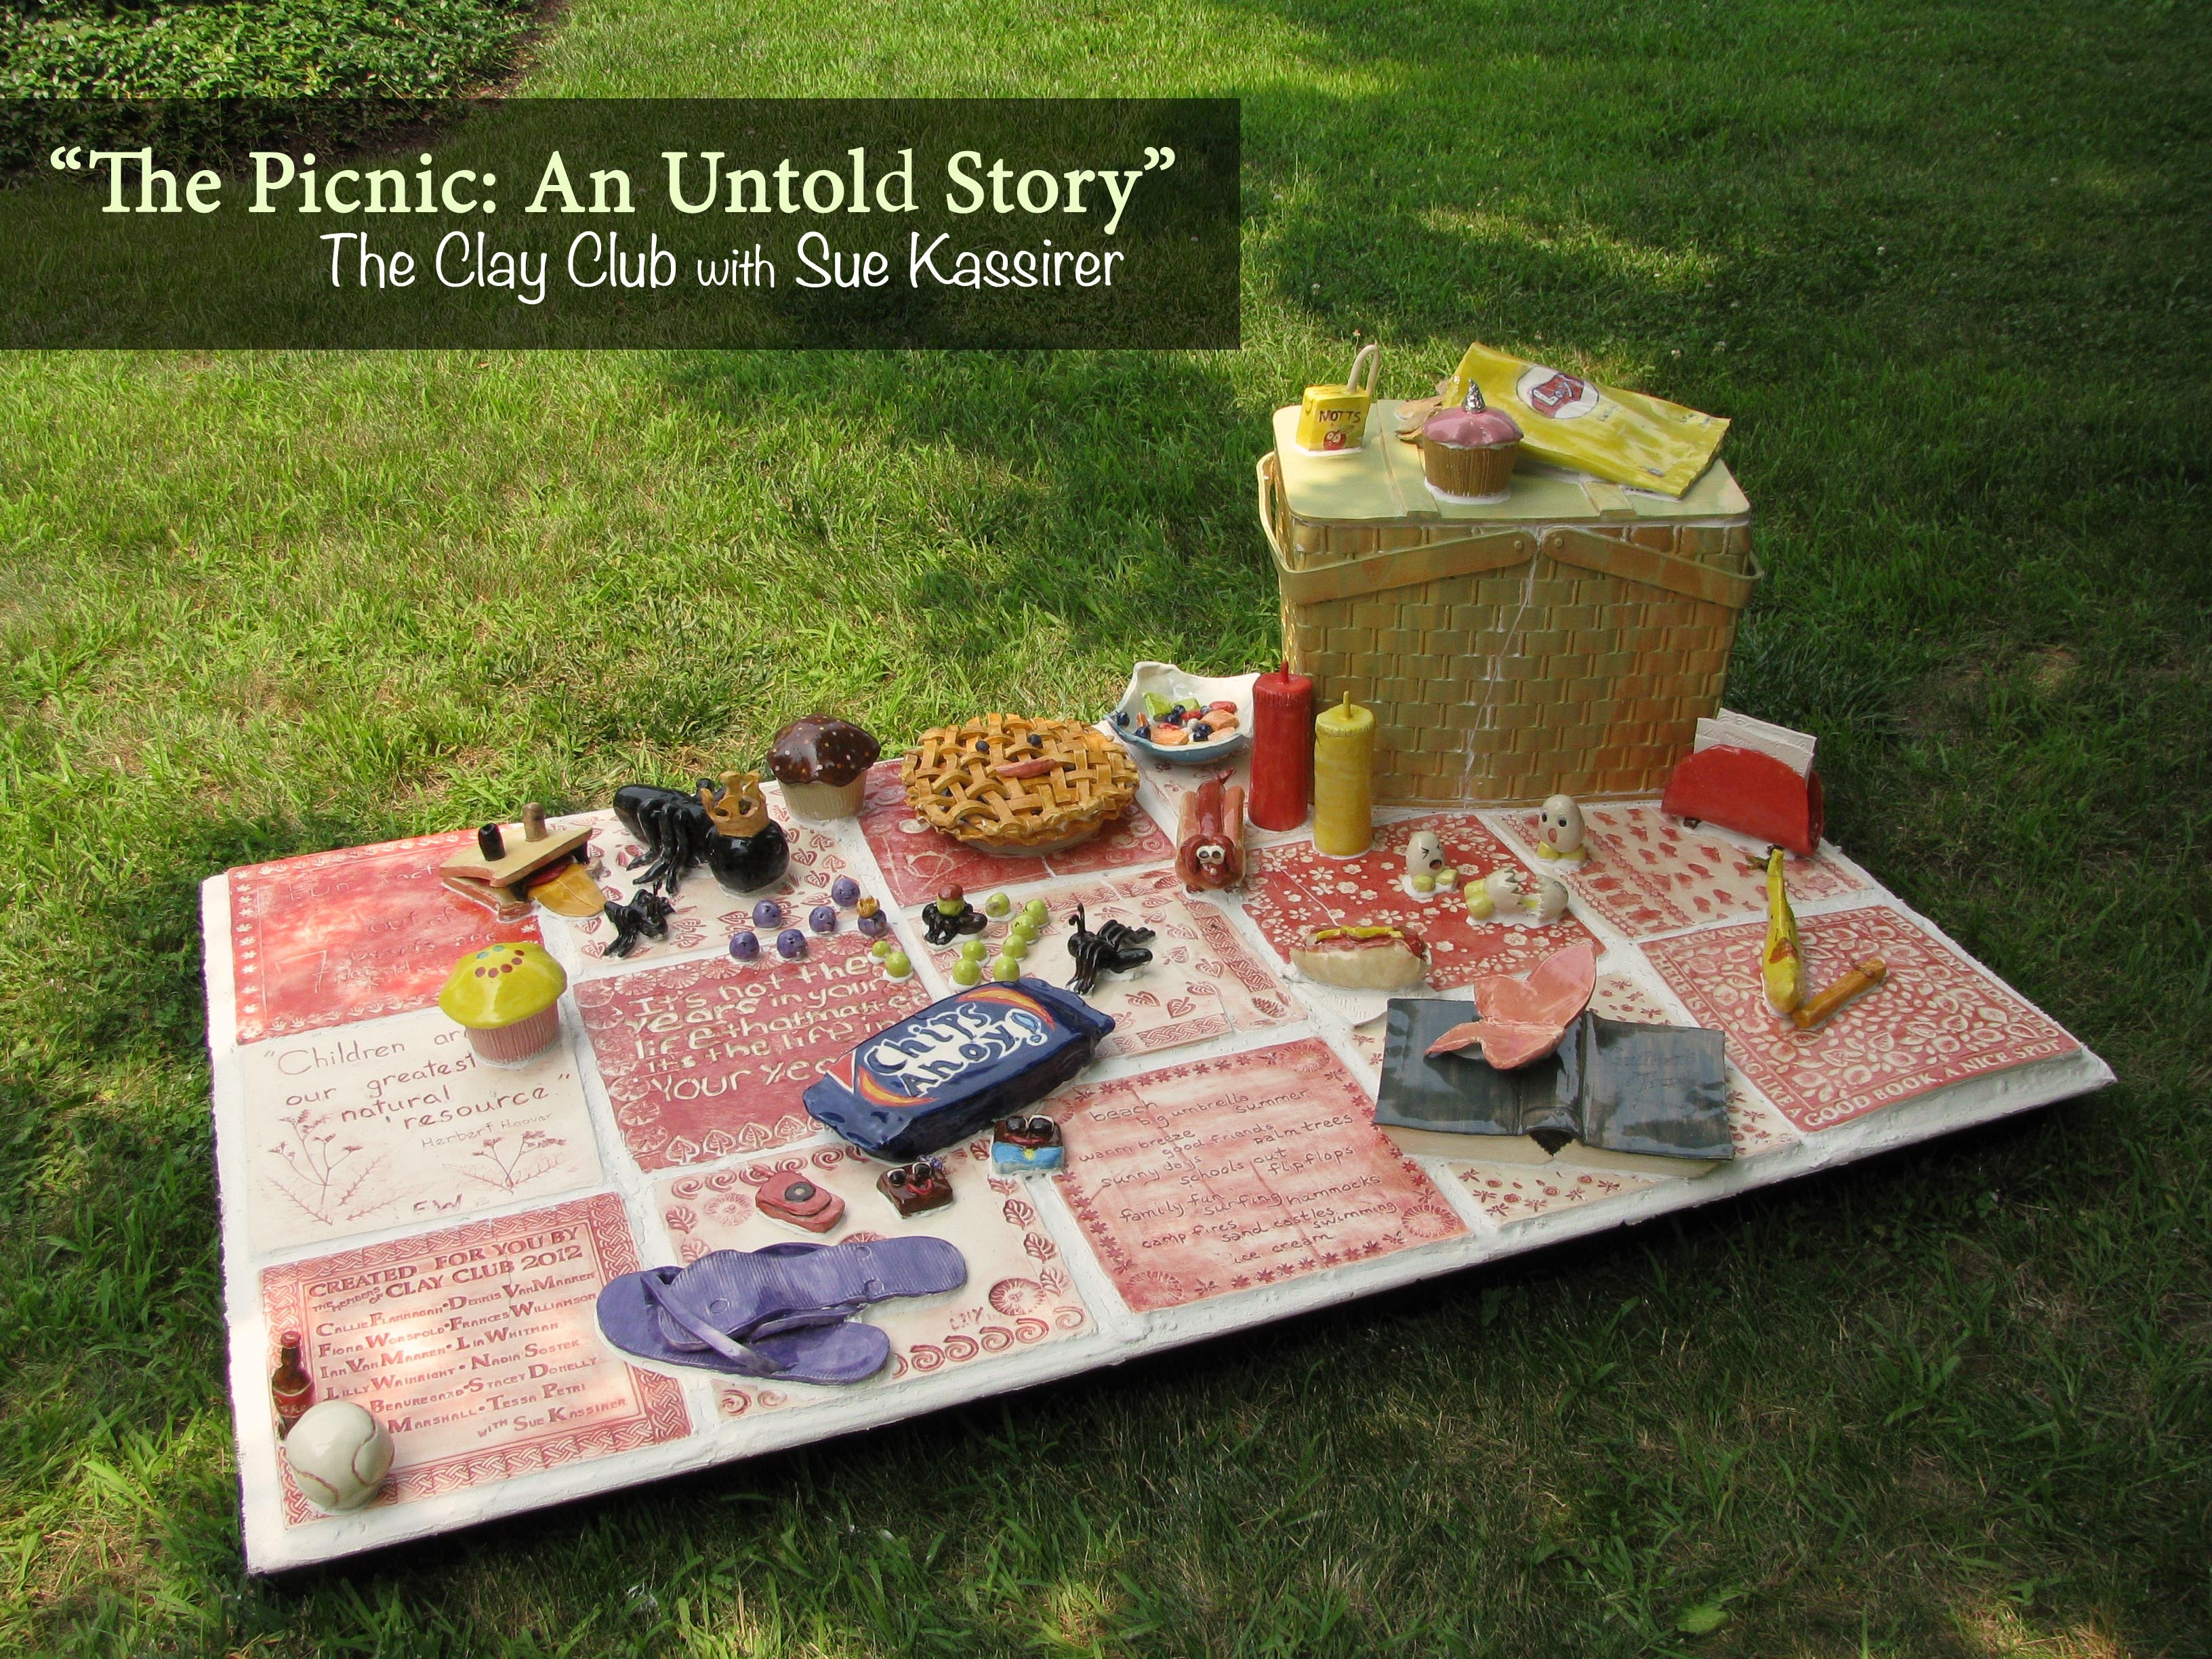 The Picnic, An Untold Story